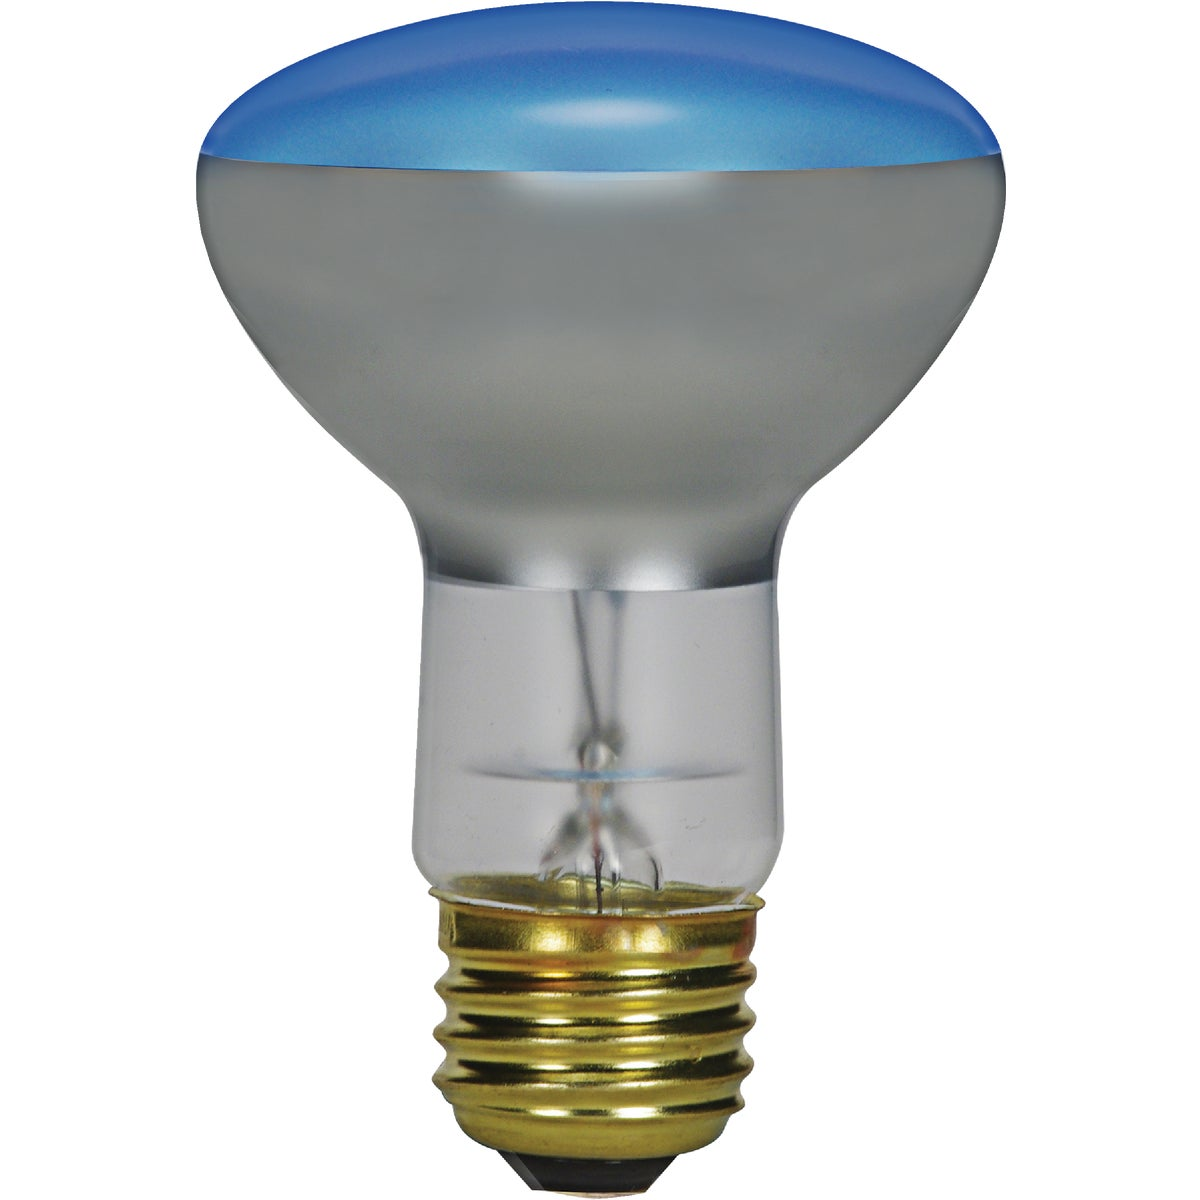 65W PLANT LIGHT BULB - 20996 by G E Lighting